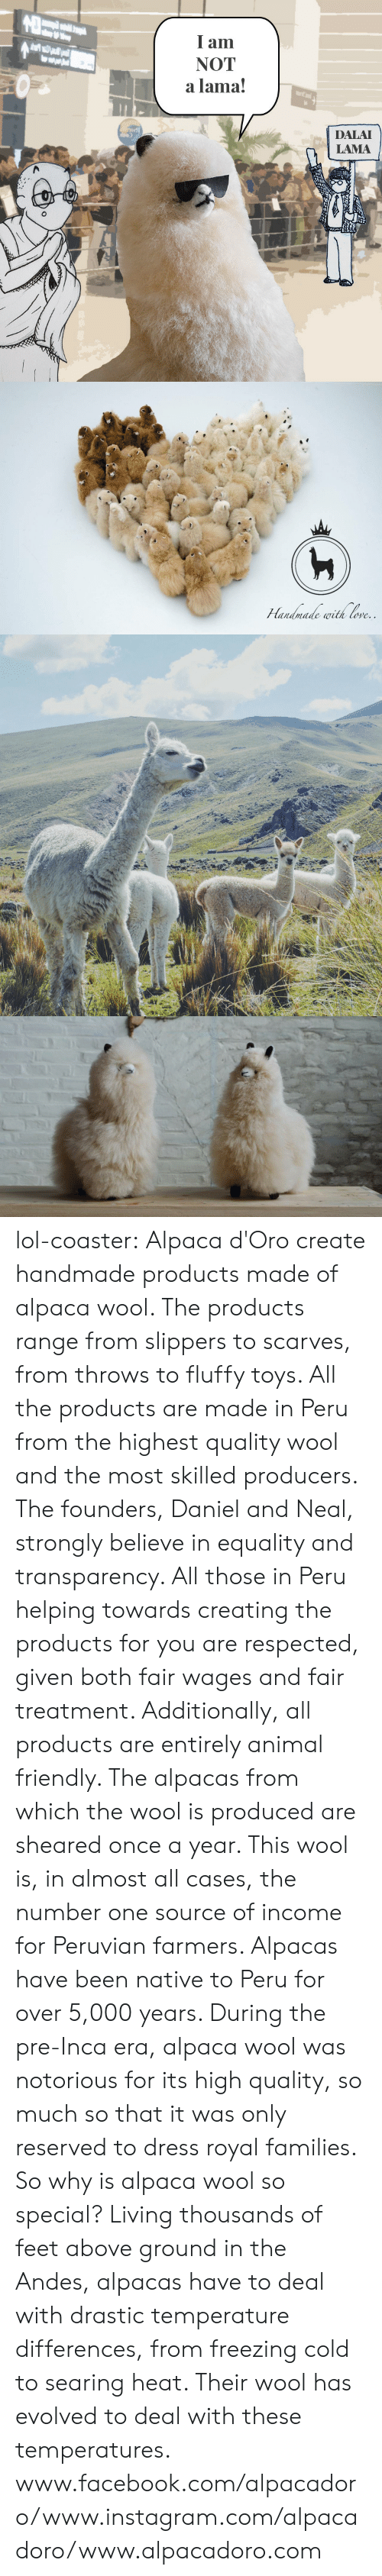 Ored: I am  NOT  a lama!  DALAI  LAMA   ore lol-coaster:    Alpaca d'Oro create handmade products made of alpaca wool. The products range from slippers to scarves, from throws to fluffy toys. All the products are made in Peru from the highest quality wool and the most skilled producers. The founders, Daniel and Neal, strongly believe in equality and transparency. All those in Peru helping towards creating the products for you are respected, given both fair wages and fair treatment. Additionally, all products are entirely animal friendly. The alpacas from which the wool is produced are sheared once a year. This wool is, in almost all cases, the number one source of income for Peruvian farmers. Alpacas have been native to Peru for over 5,000 years. During the pre-Inca era, alpaca wool was notorious for its high quality, so much so that it was only reserved to dress royal families. So why is alpaca wool so special? Living thousands of feet above ground in the Andes, alpacas have to deal with drastic temperature differences, from freezing cold to searing heat. Their wool has evolved to deal with these temperatures.     www.facebook.com/alpacadoro/www.instagram.com/alpacadoro/www.alpacadoro.com